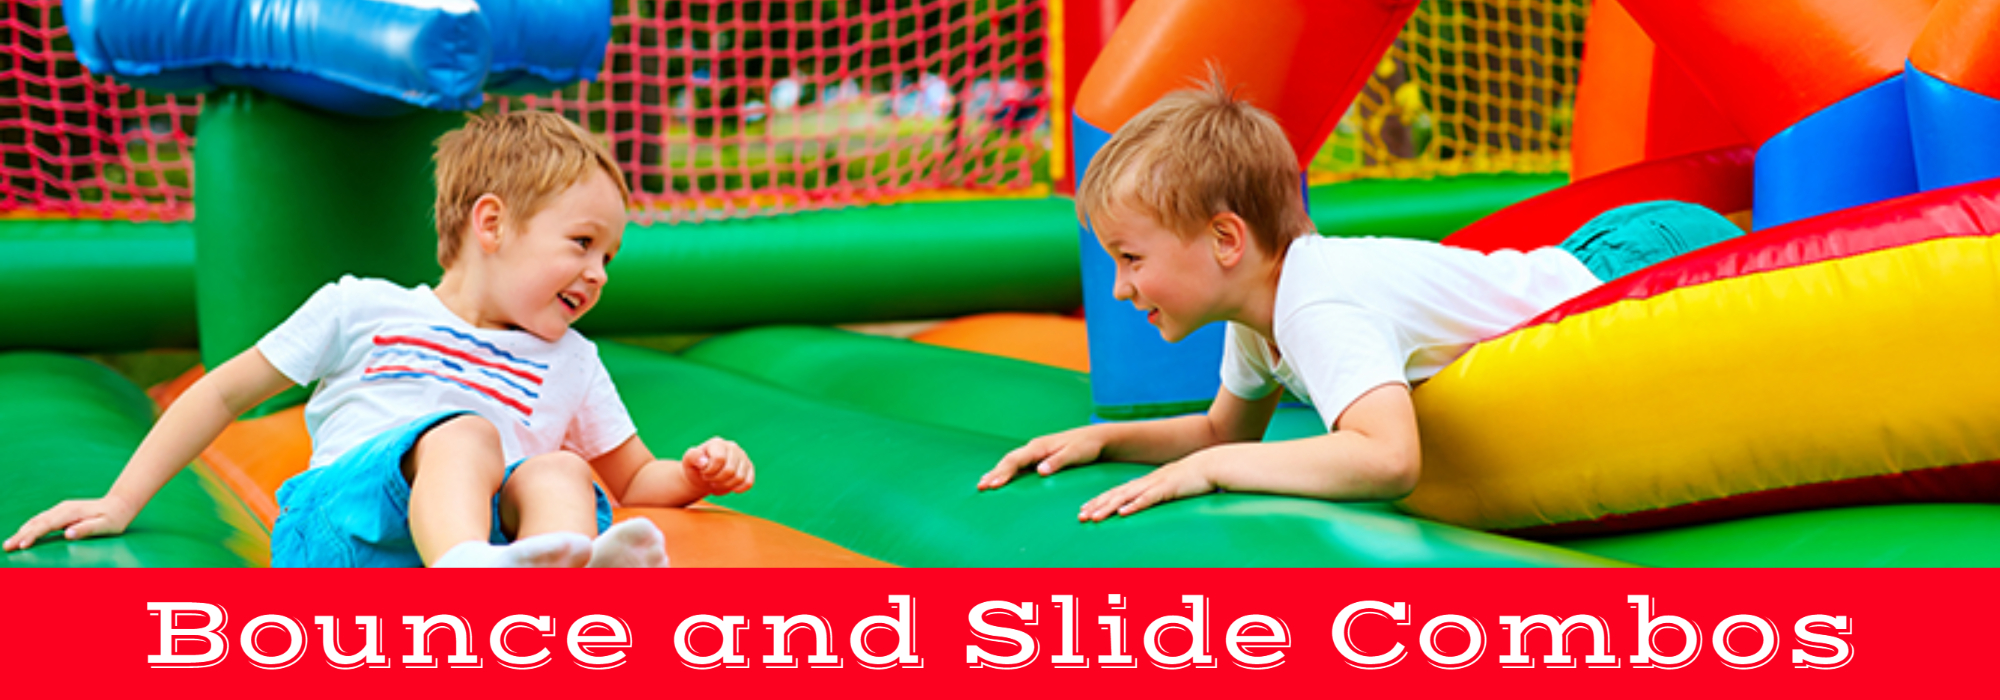 bounce and slide combo rentals in Cumming